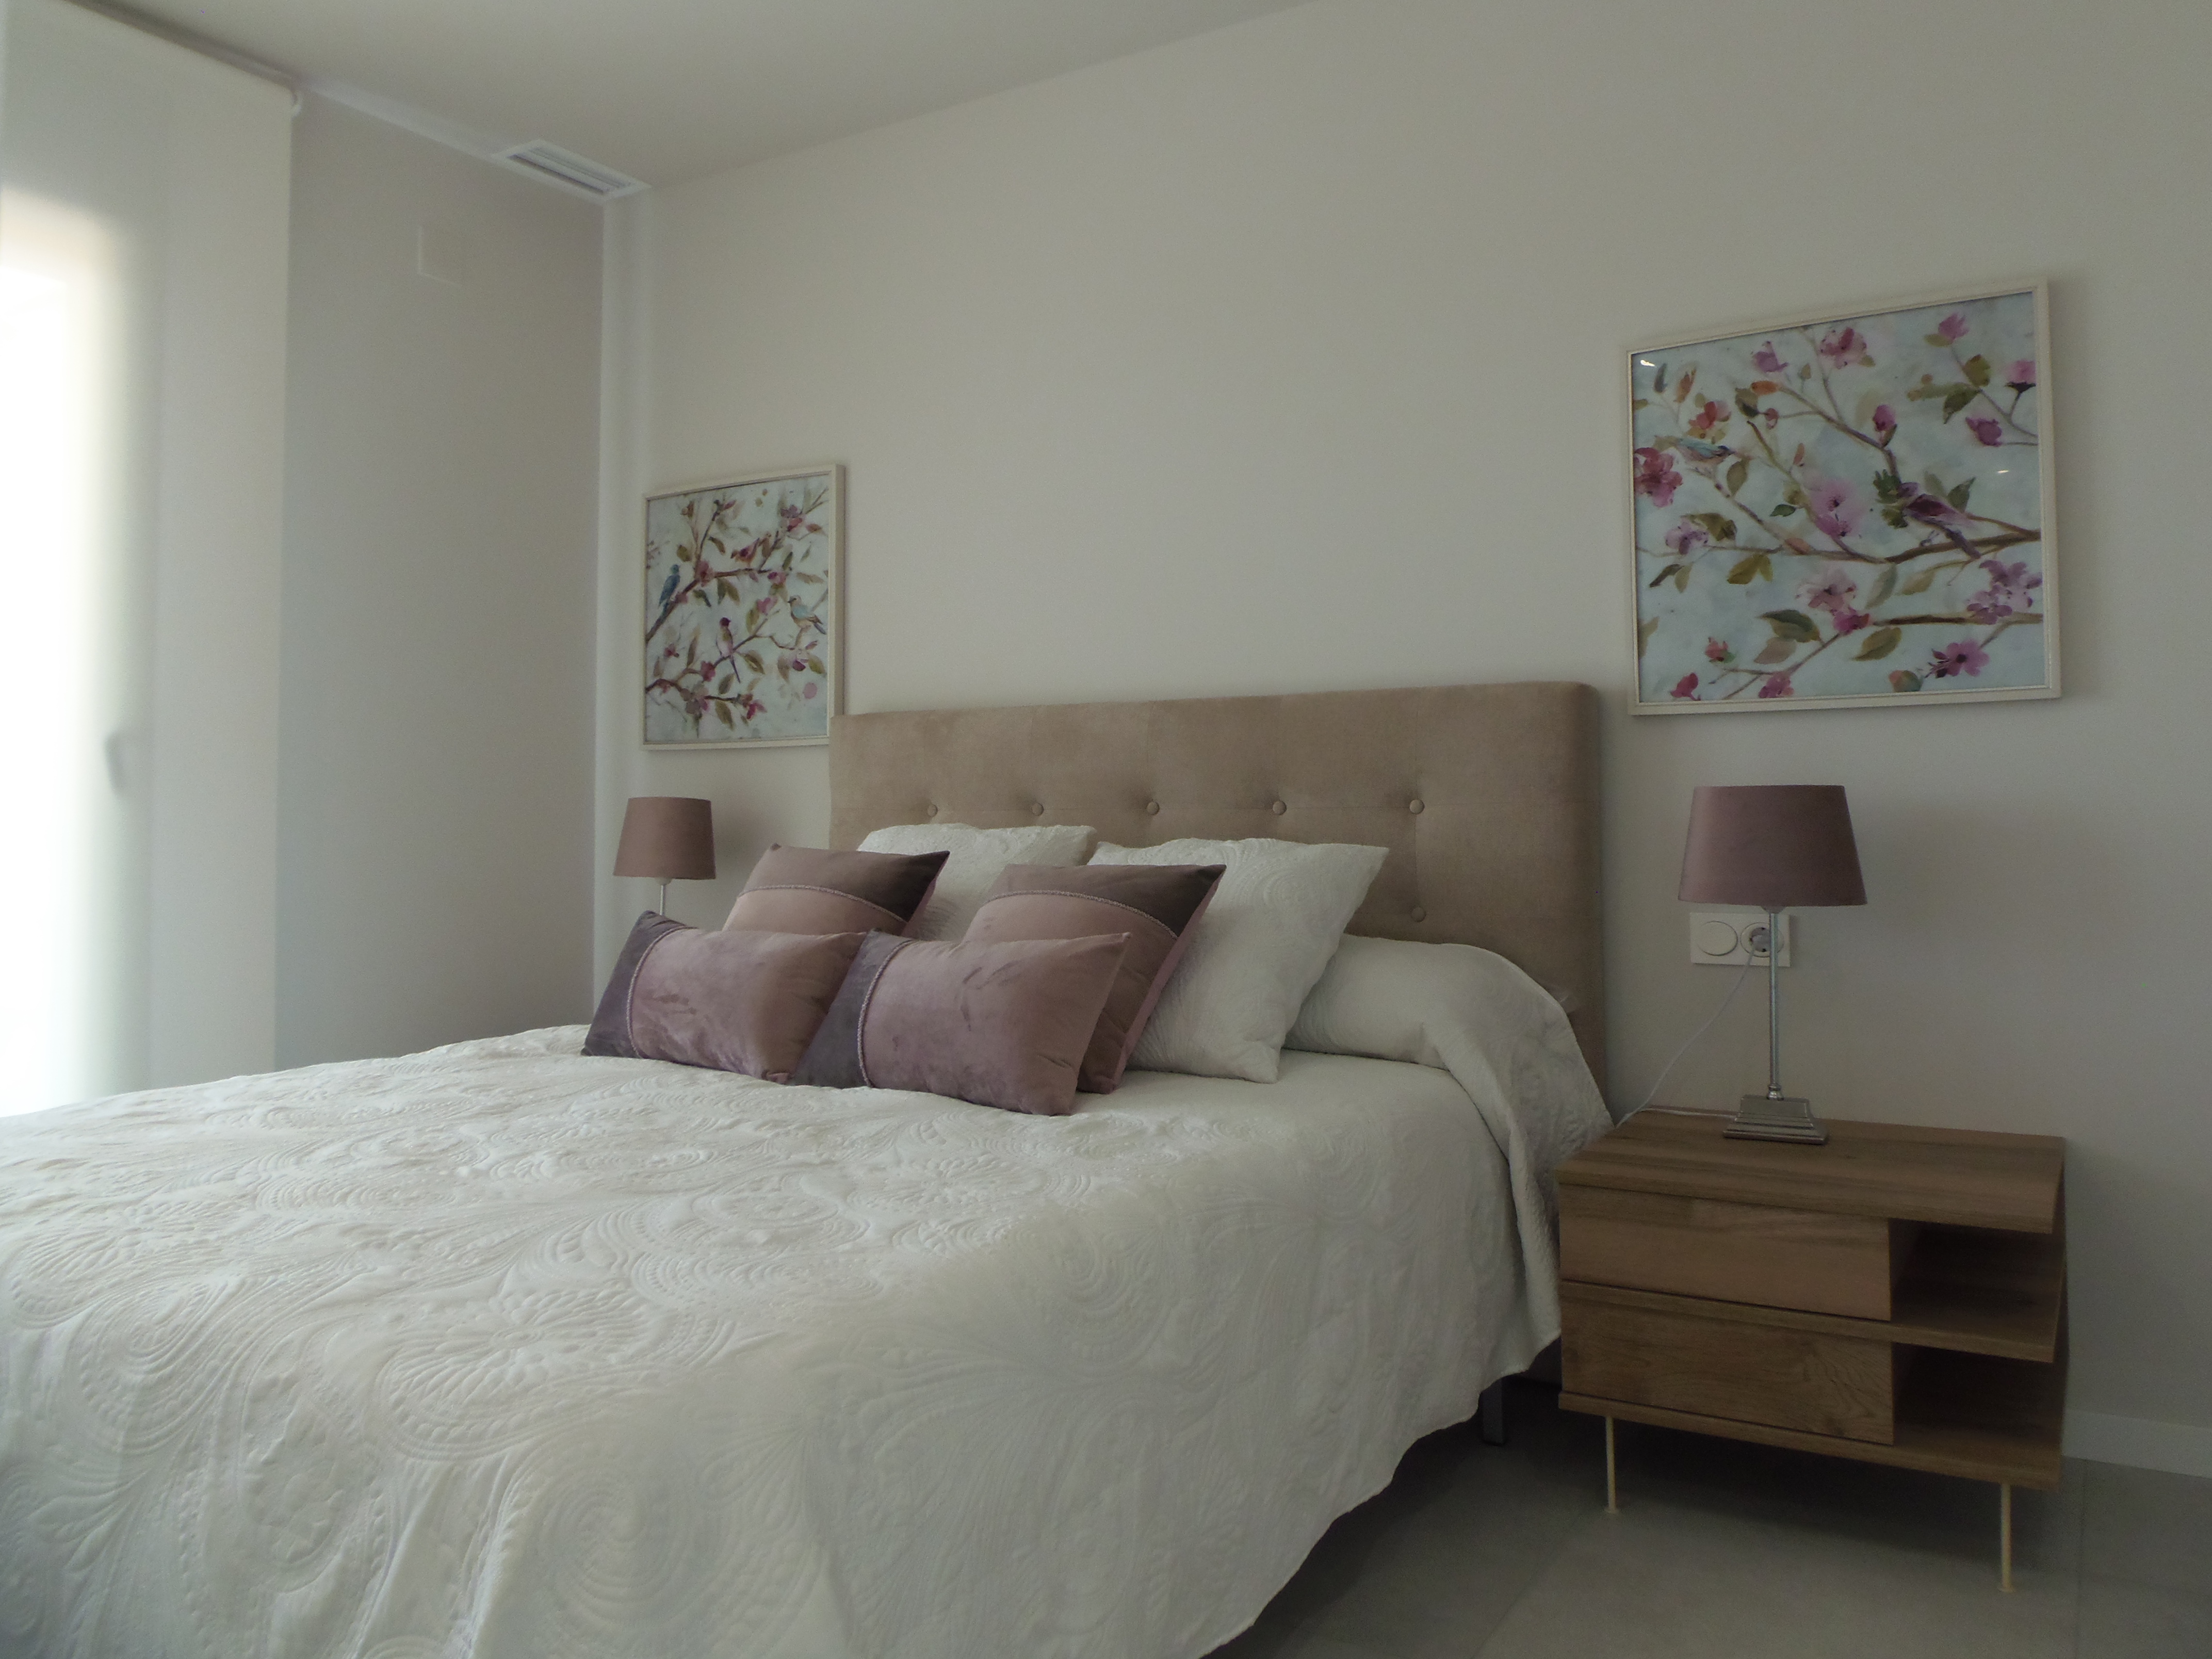 3 bedroom apartment For Sale in Mil Palmeras - photograph 22